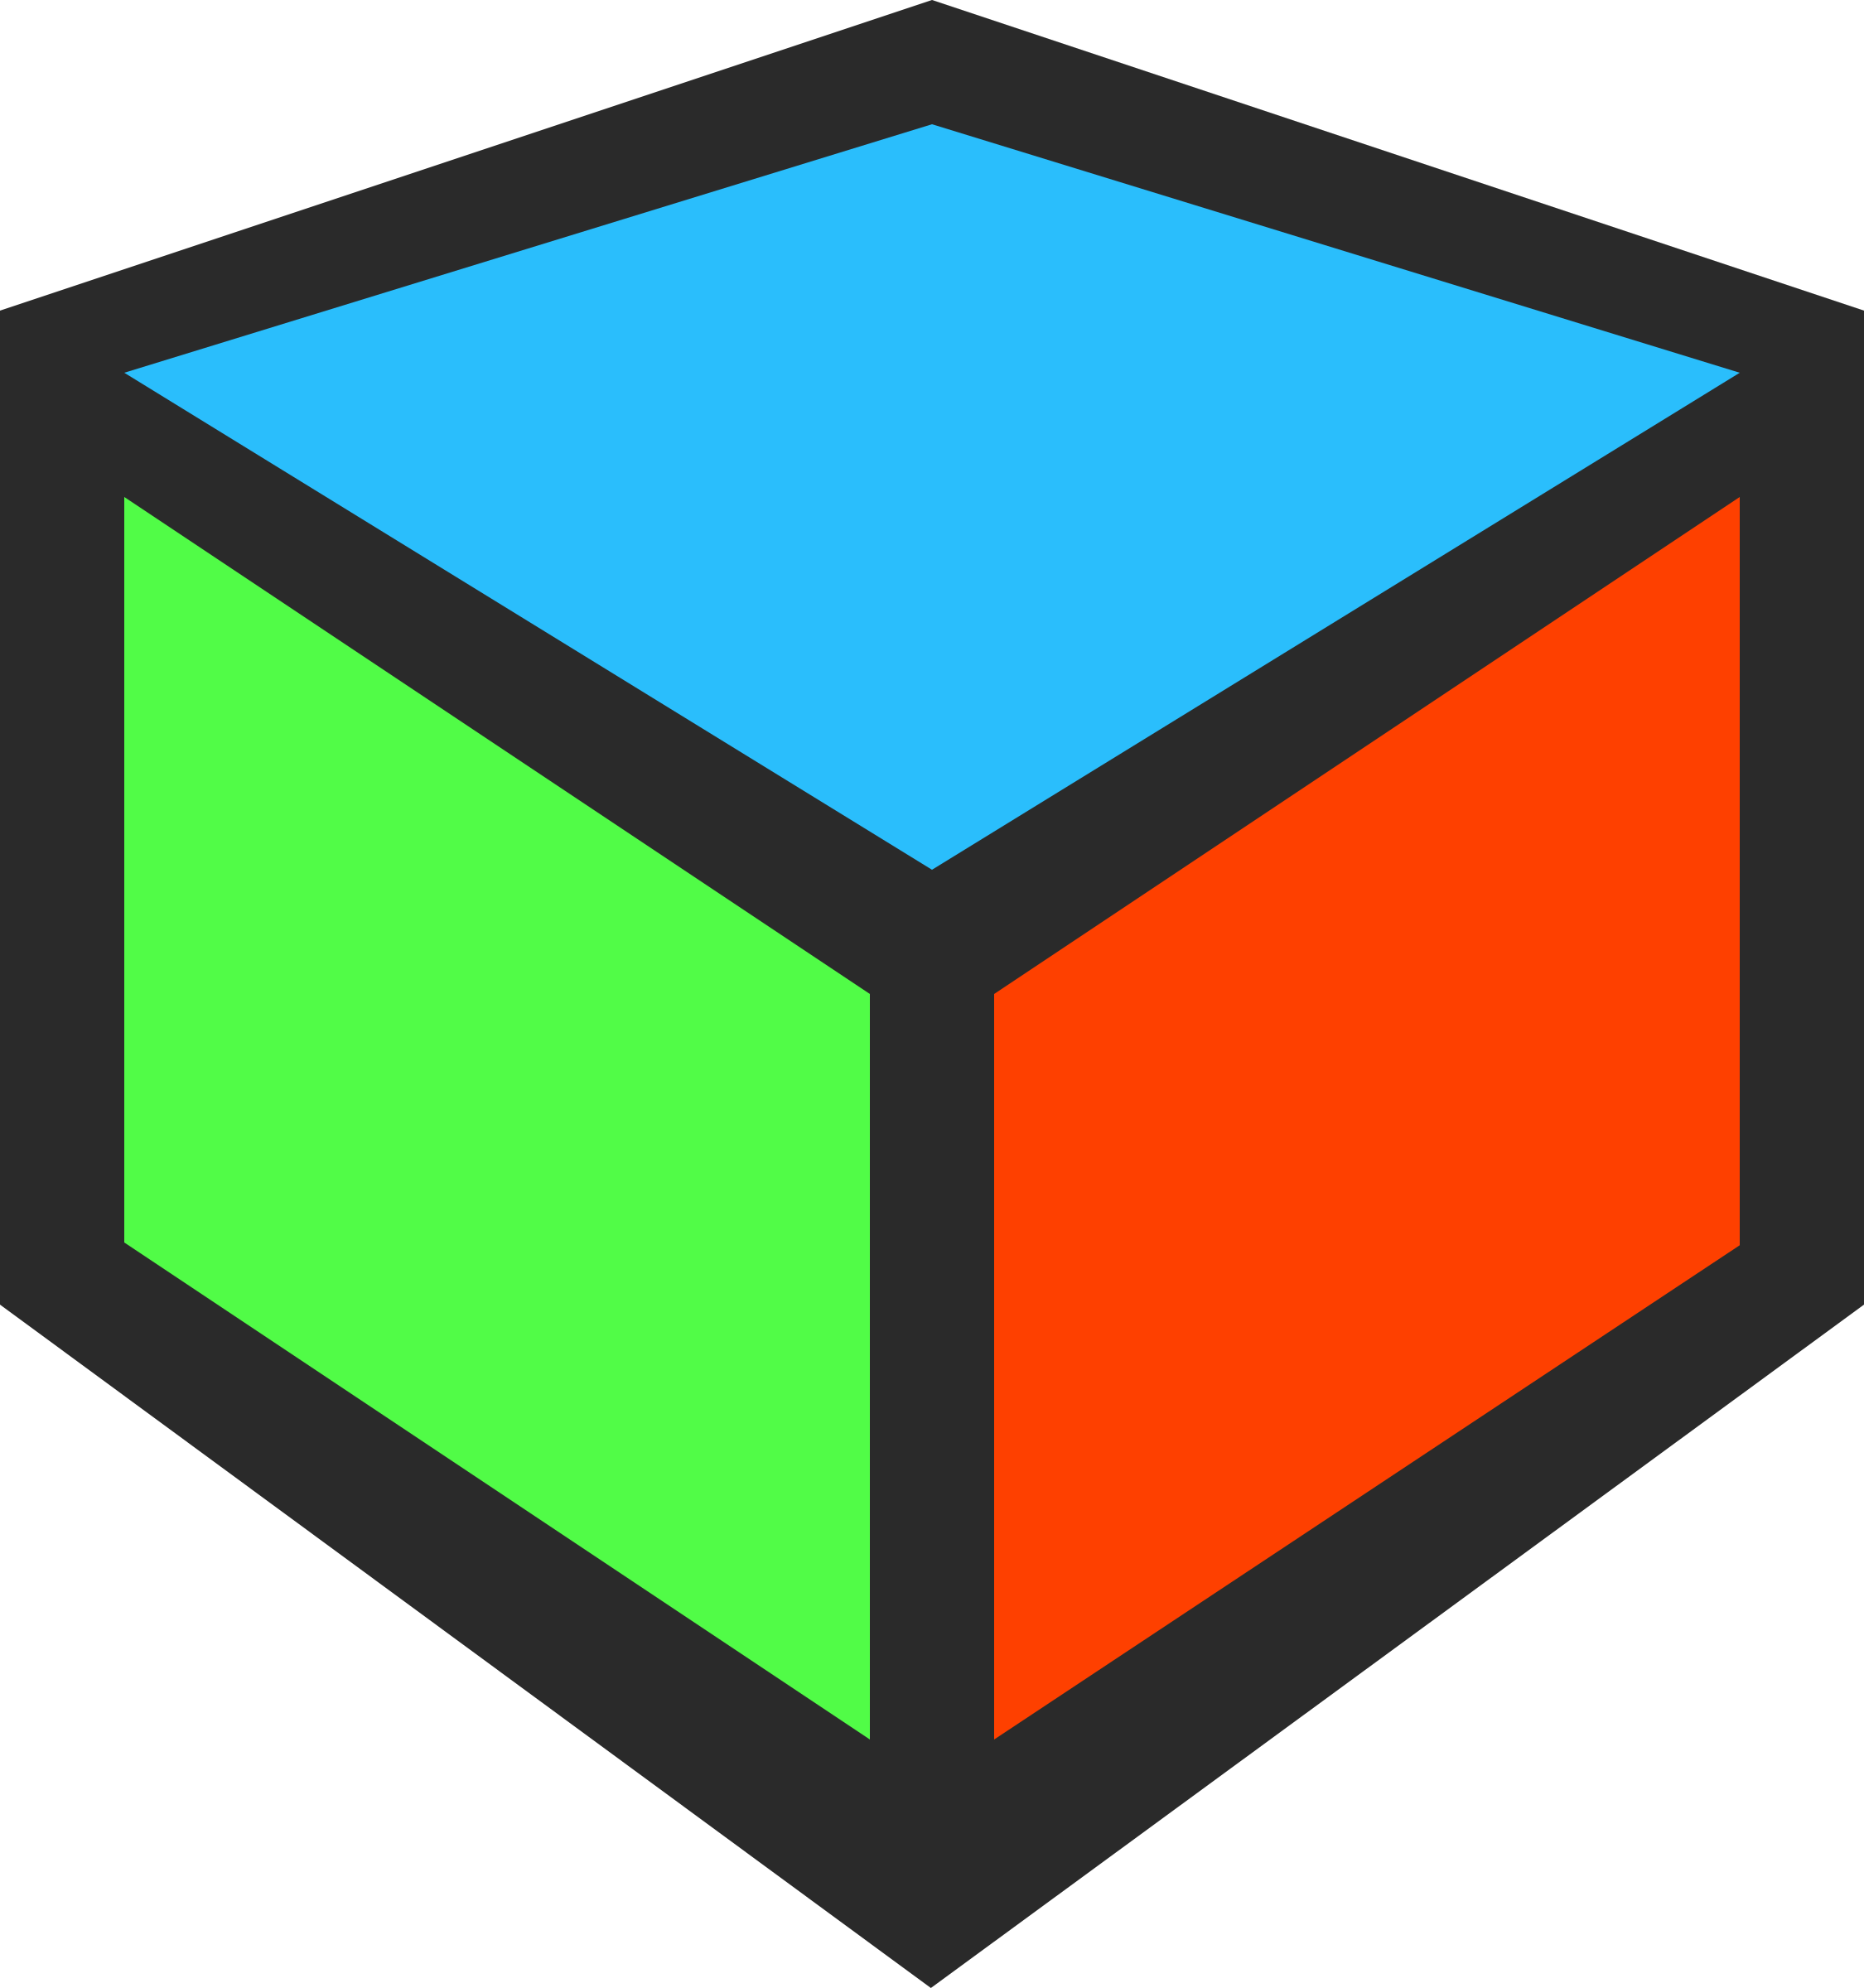 3D clipart purpose Icon Cube 3D 3D Cube